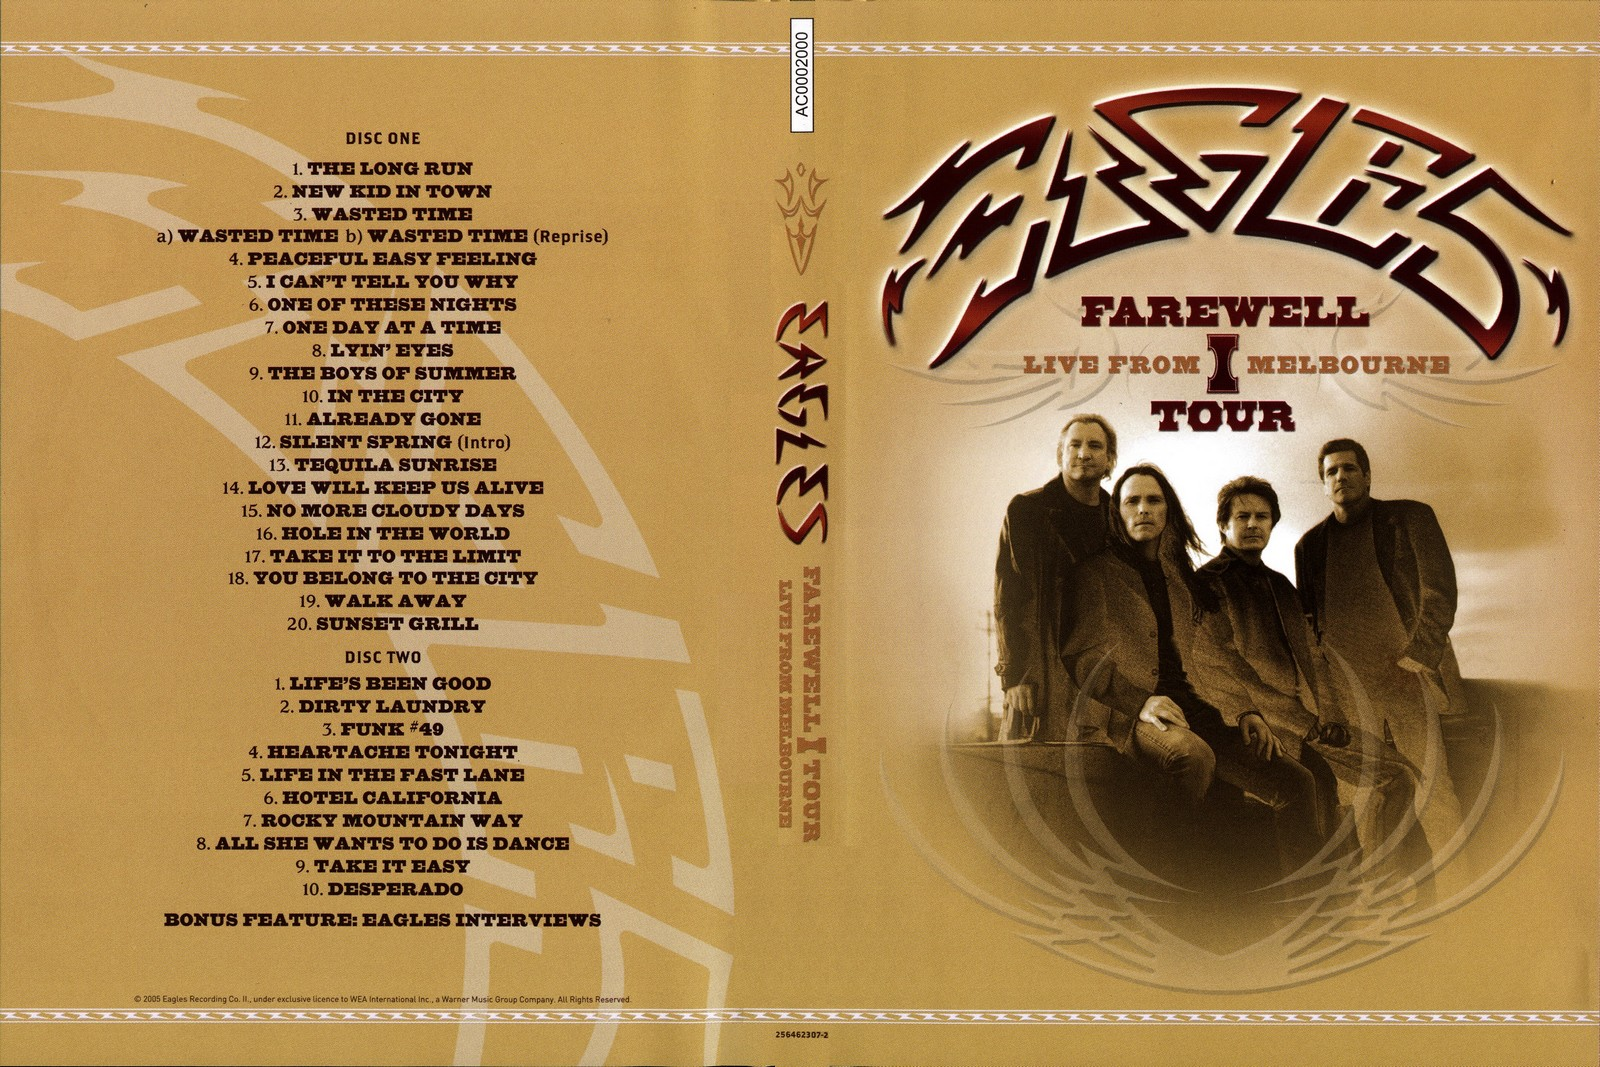 Image Result For Eagles Farewell Tour Live From Melbourne Amazon Com